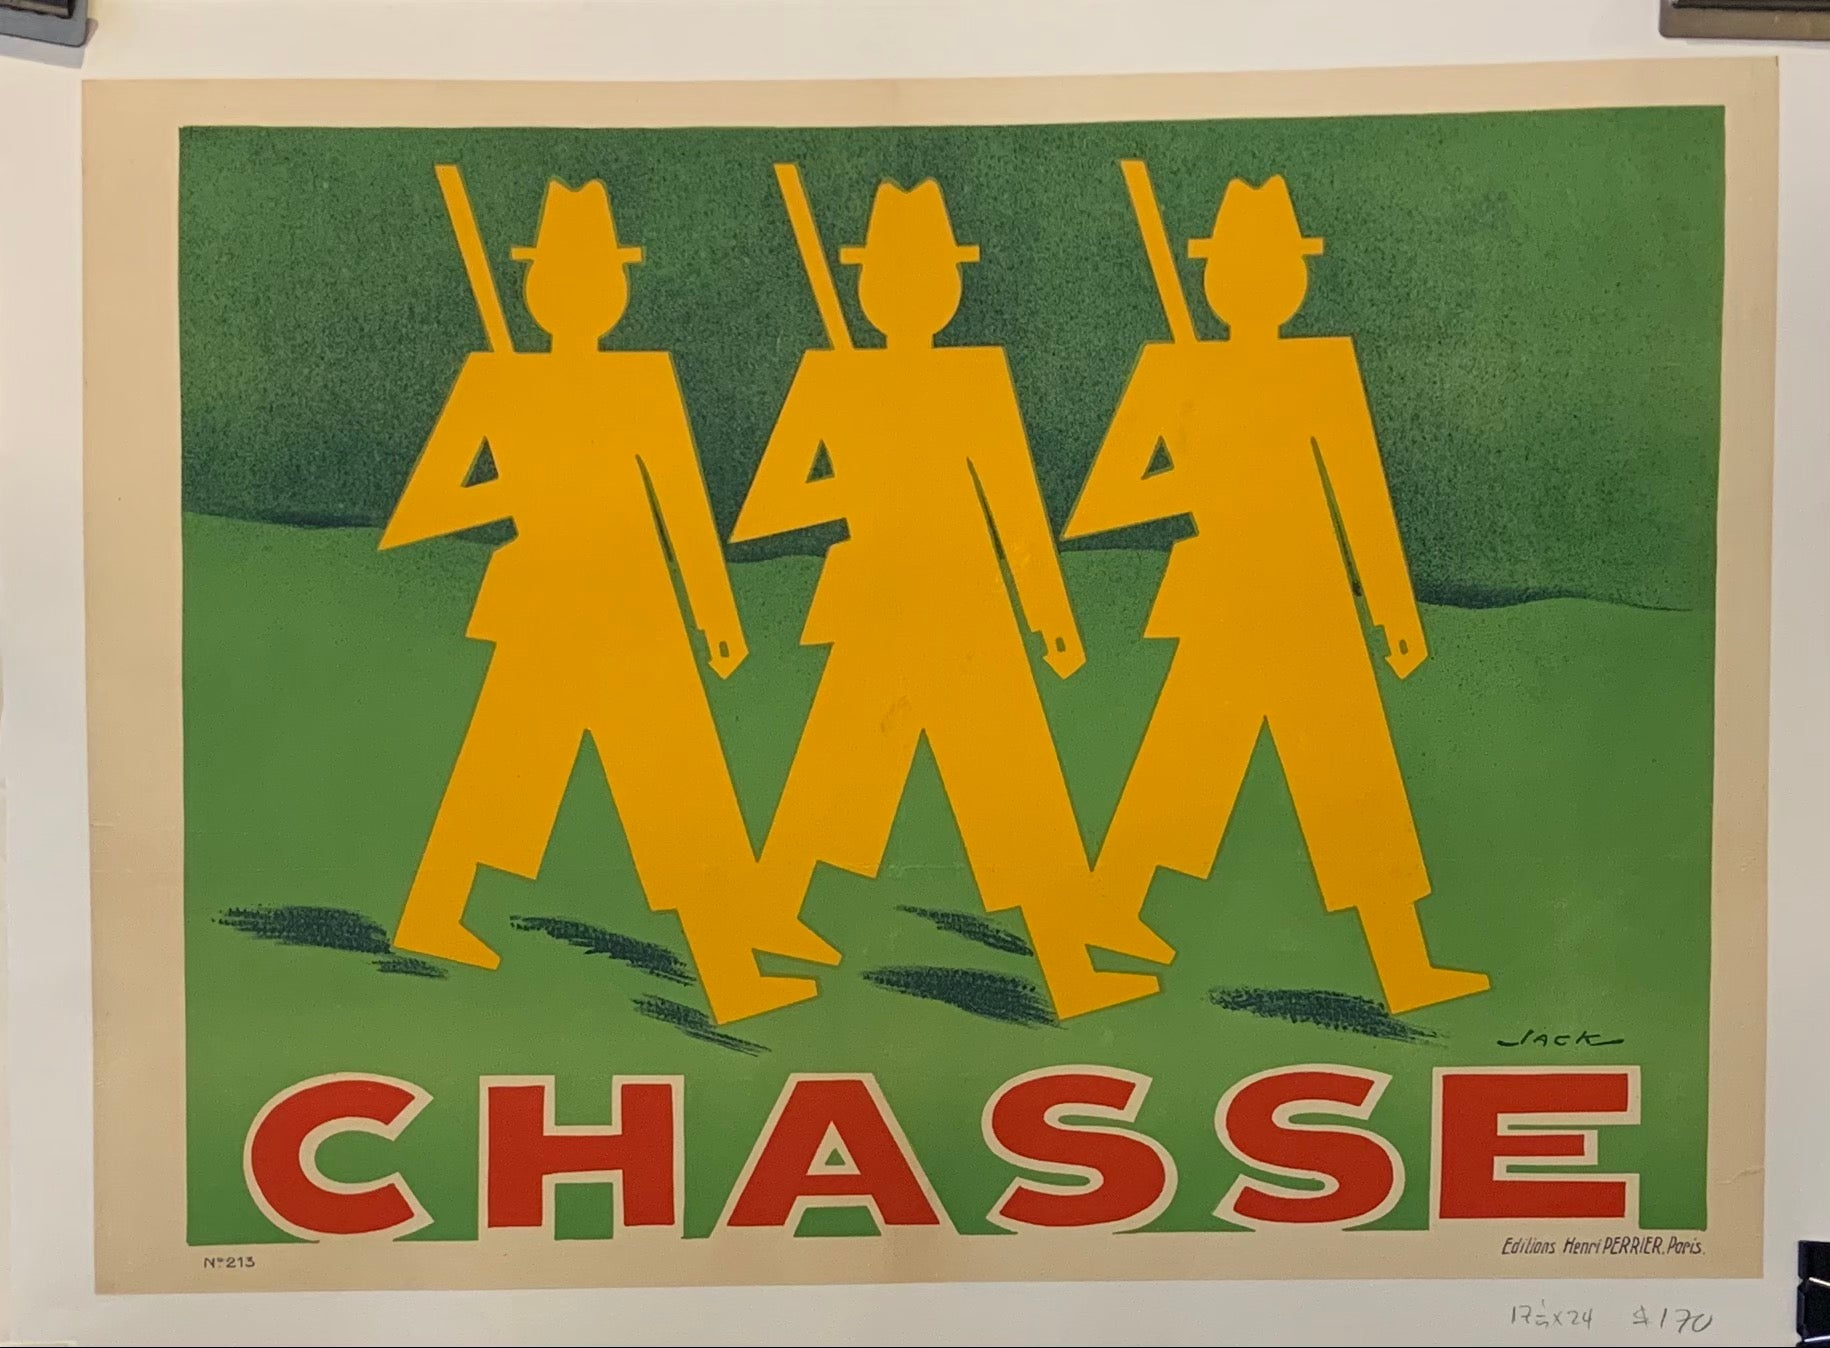 Chasse Poster